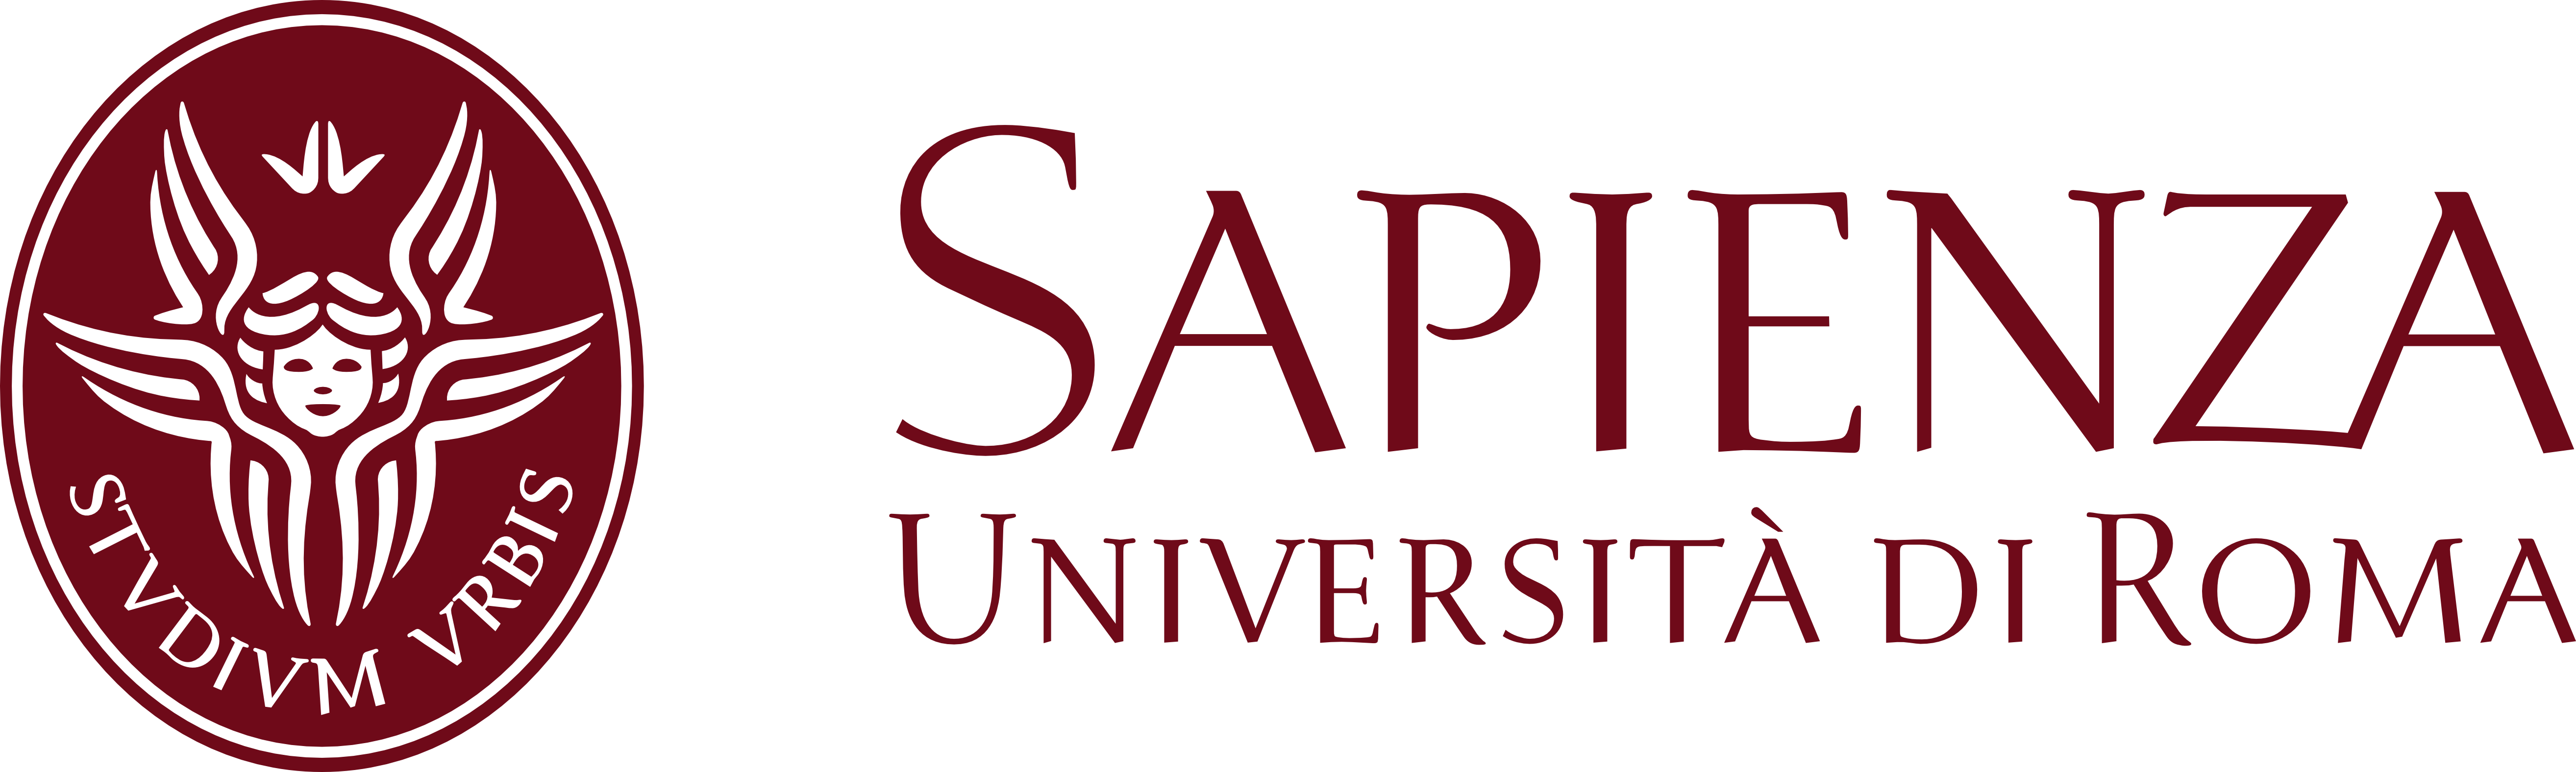 Sapienza Università di Roma (Computer Science)